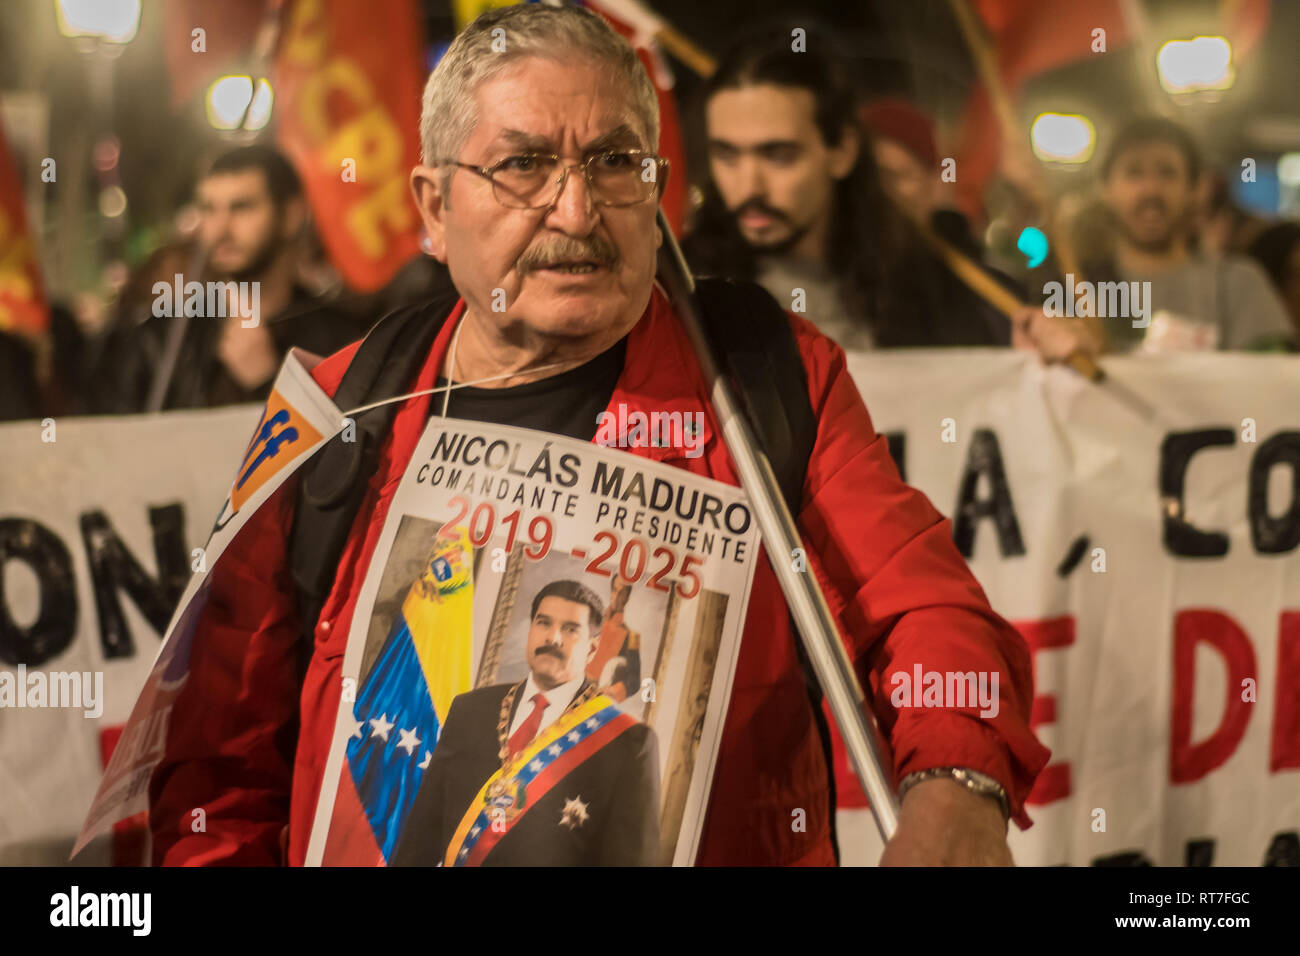 Madrid, Spain. 28th Feb, 2019. March against the military intervention of United States in Venezuela '¨No war intervention'¨in Madrid Spain. In the picture an old man supporting the goverment of Nicolas Maduro'¨ Credit: Alberto Sibaja Ramírez/Alamy Live News - Stock Image